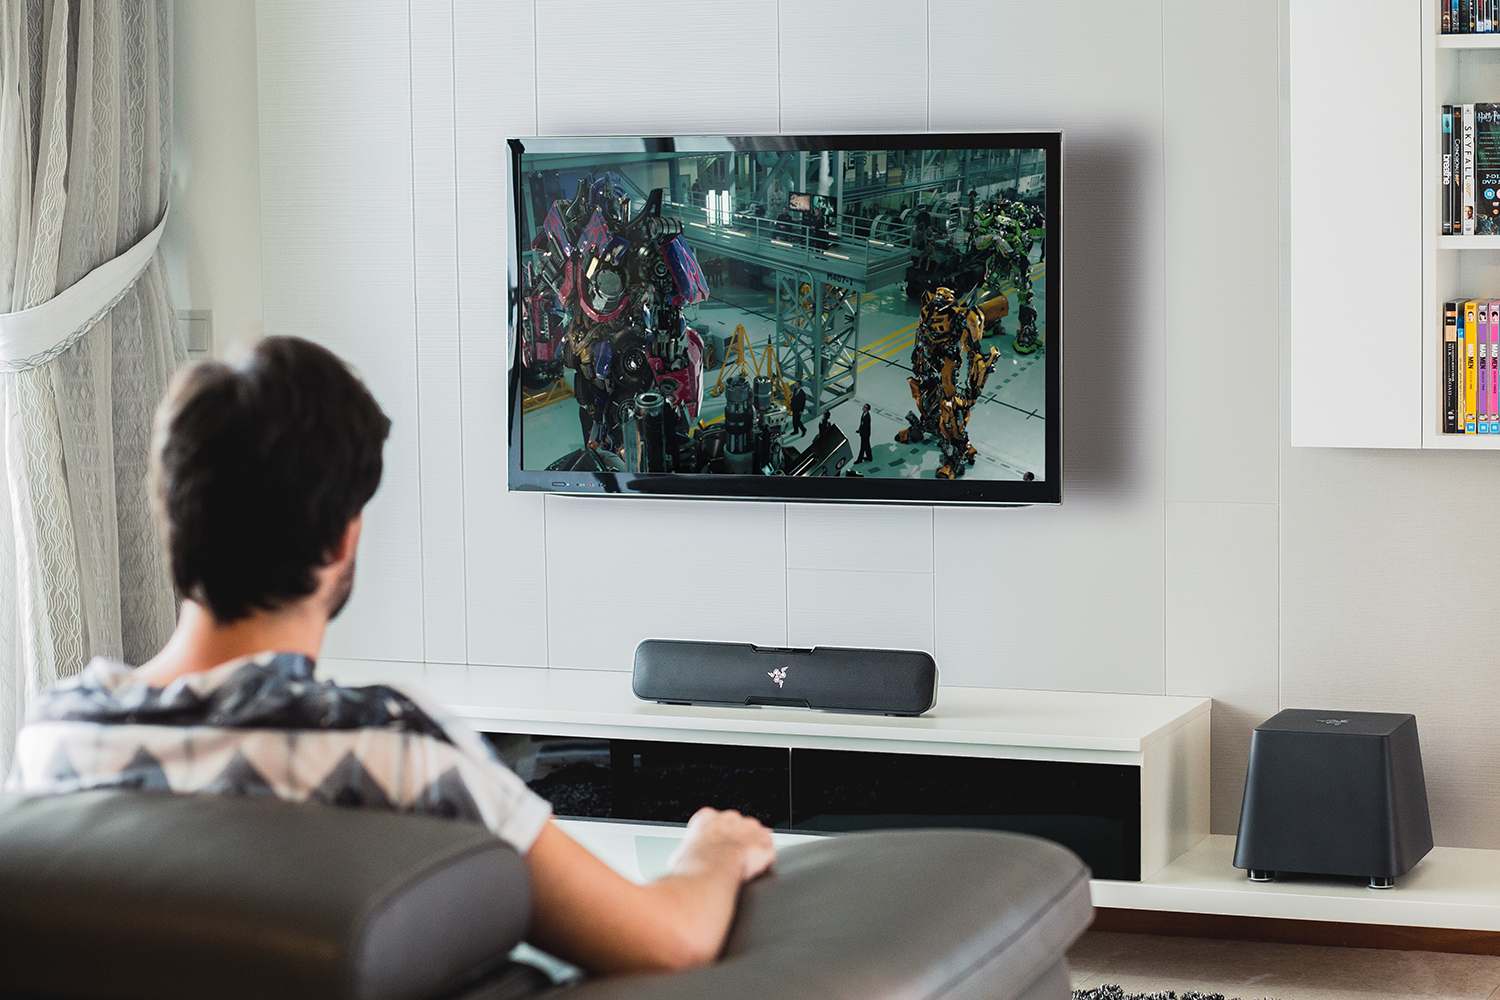 how to get full 5.1 surround sound